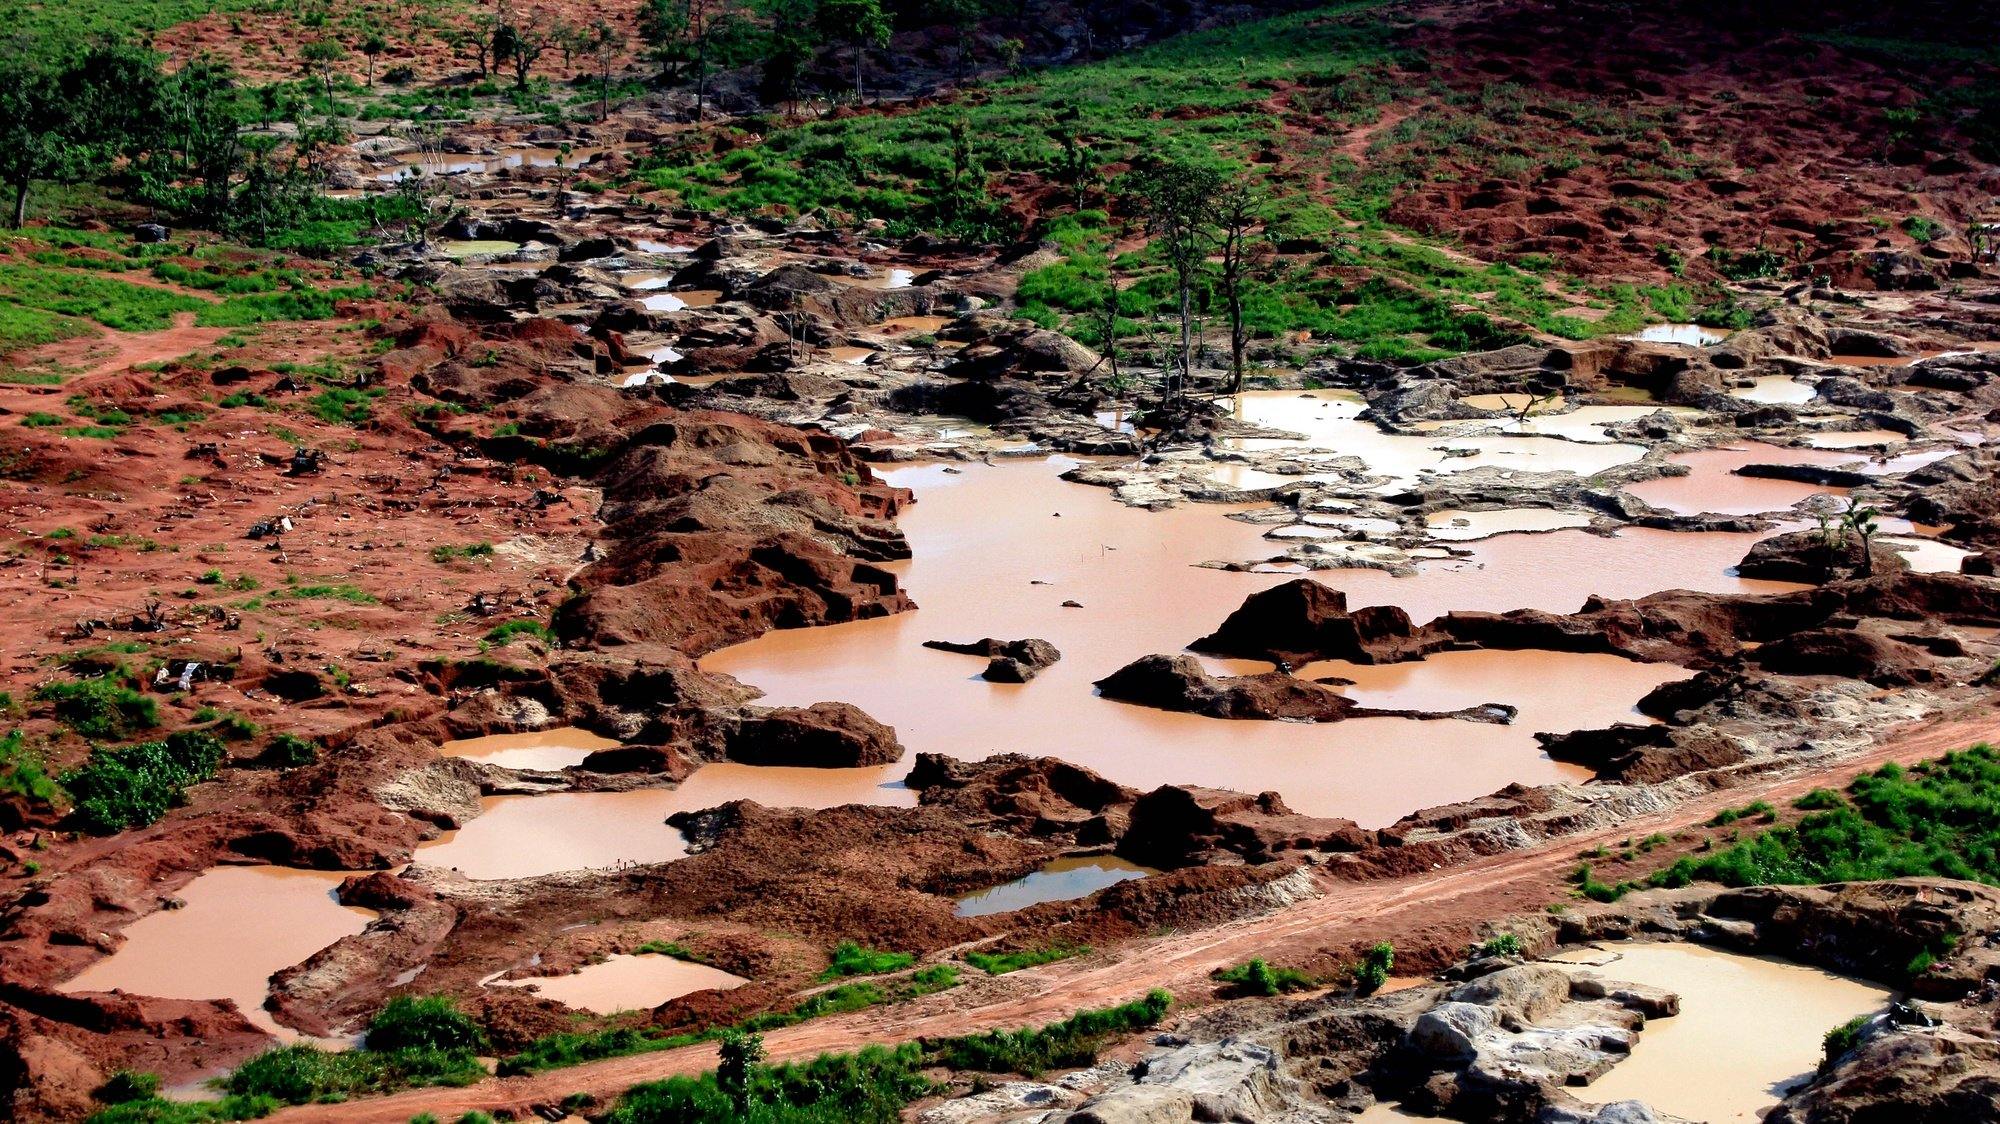 """Aerial view of the diamond mines where Congolese migrants were working and began to leave the mining zone following Angola's authorities 'Operation Transparency' in the province of Lunda Norte, Angola, 20 October 2018 (issued 21 October 2018). The operation, which takes place in the Angolan provinces of Lunda Norte, Lunda Sul, Moxico, Bié, Malanje, Cuando-Cubango, Uíje, and Zaire, aims to """"only restore legality regarding the sale of diamonds and normalize the movement of people and goods"""", assure the Angolan authorities. AMPE ROGERIO/LUSA"""